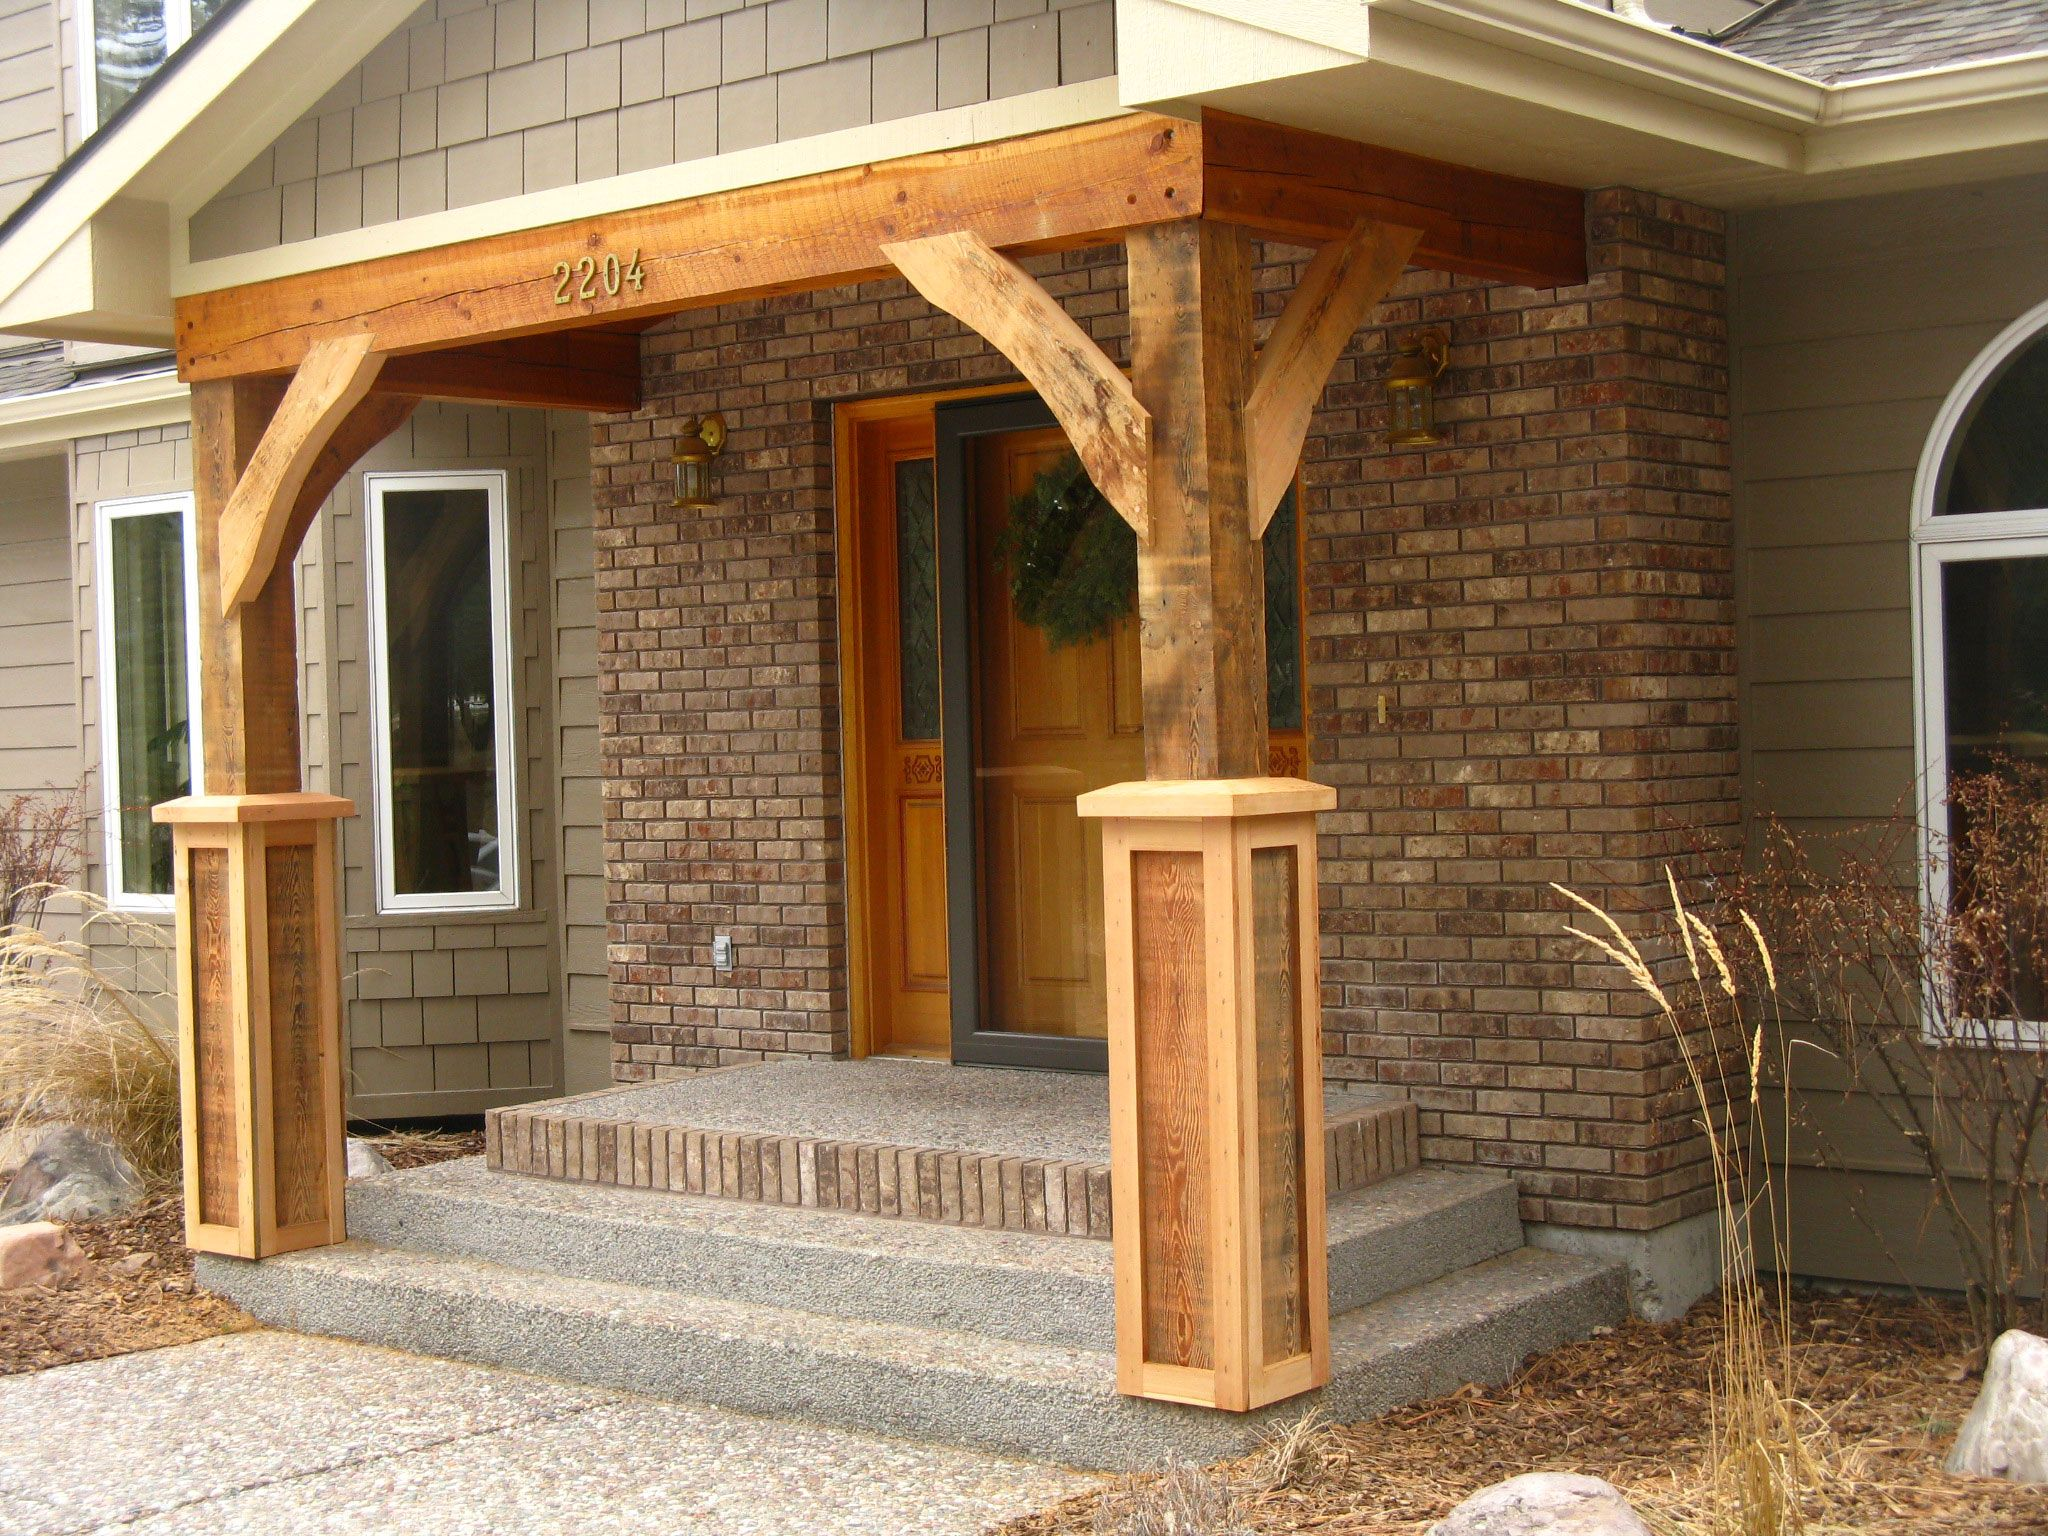 Palatial Flat Roofing For Small Front Porch Ideas With Barn Reclaimed Wood  Column Also Brick Wall Facade In Country Home Outdoor Designs Part 58